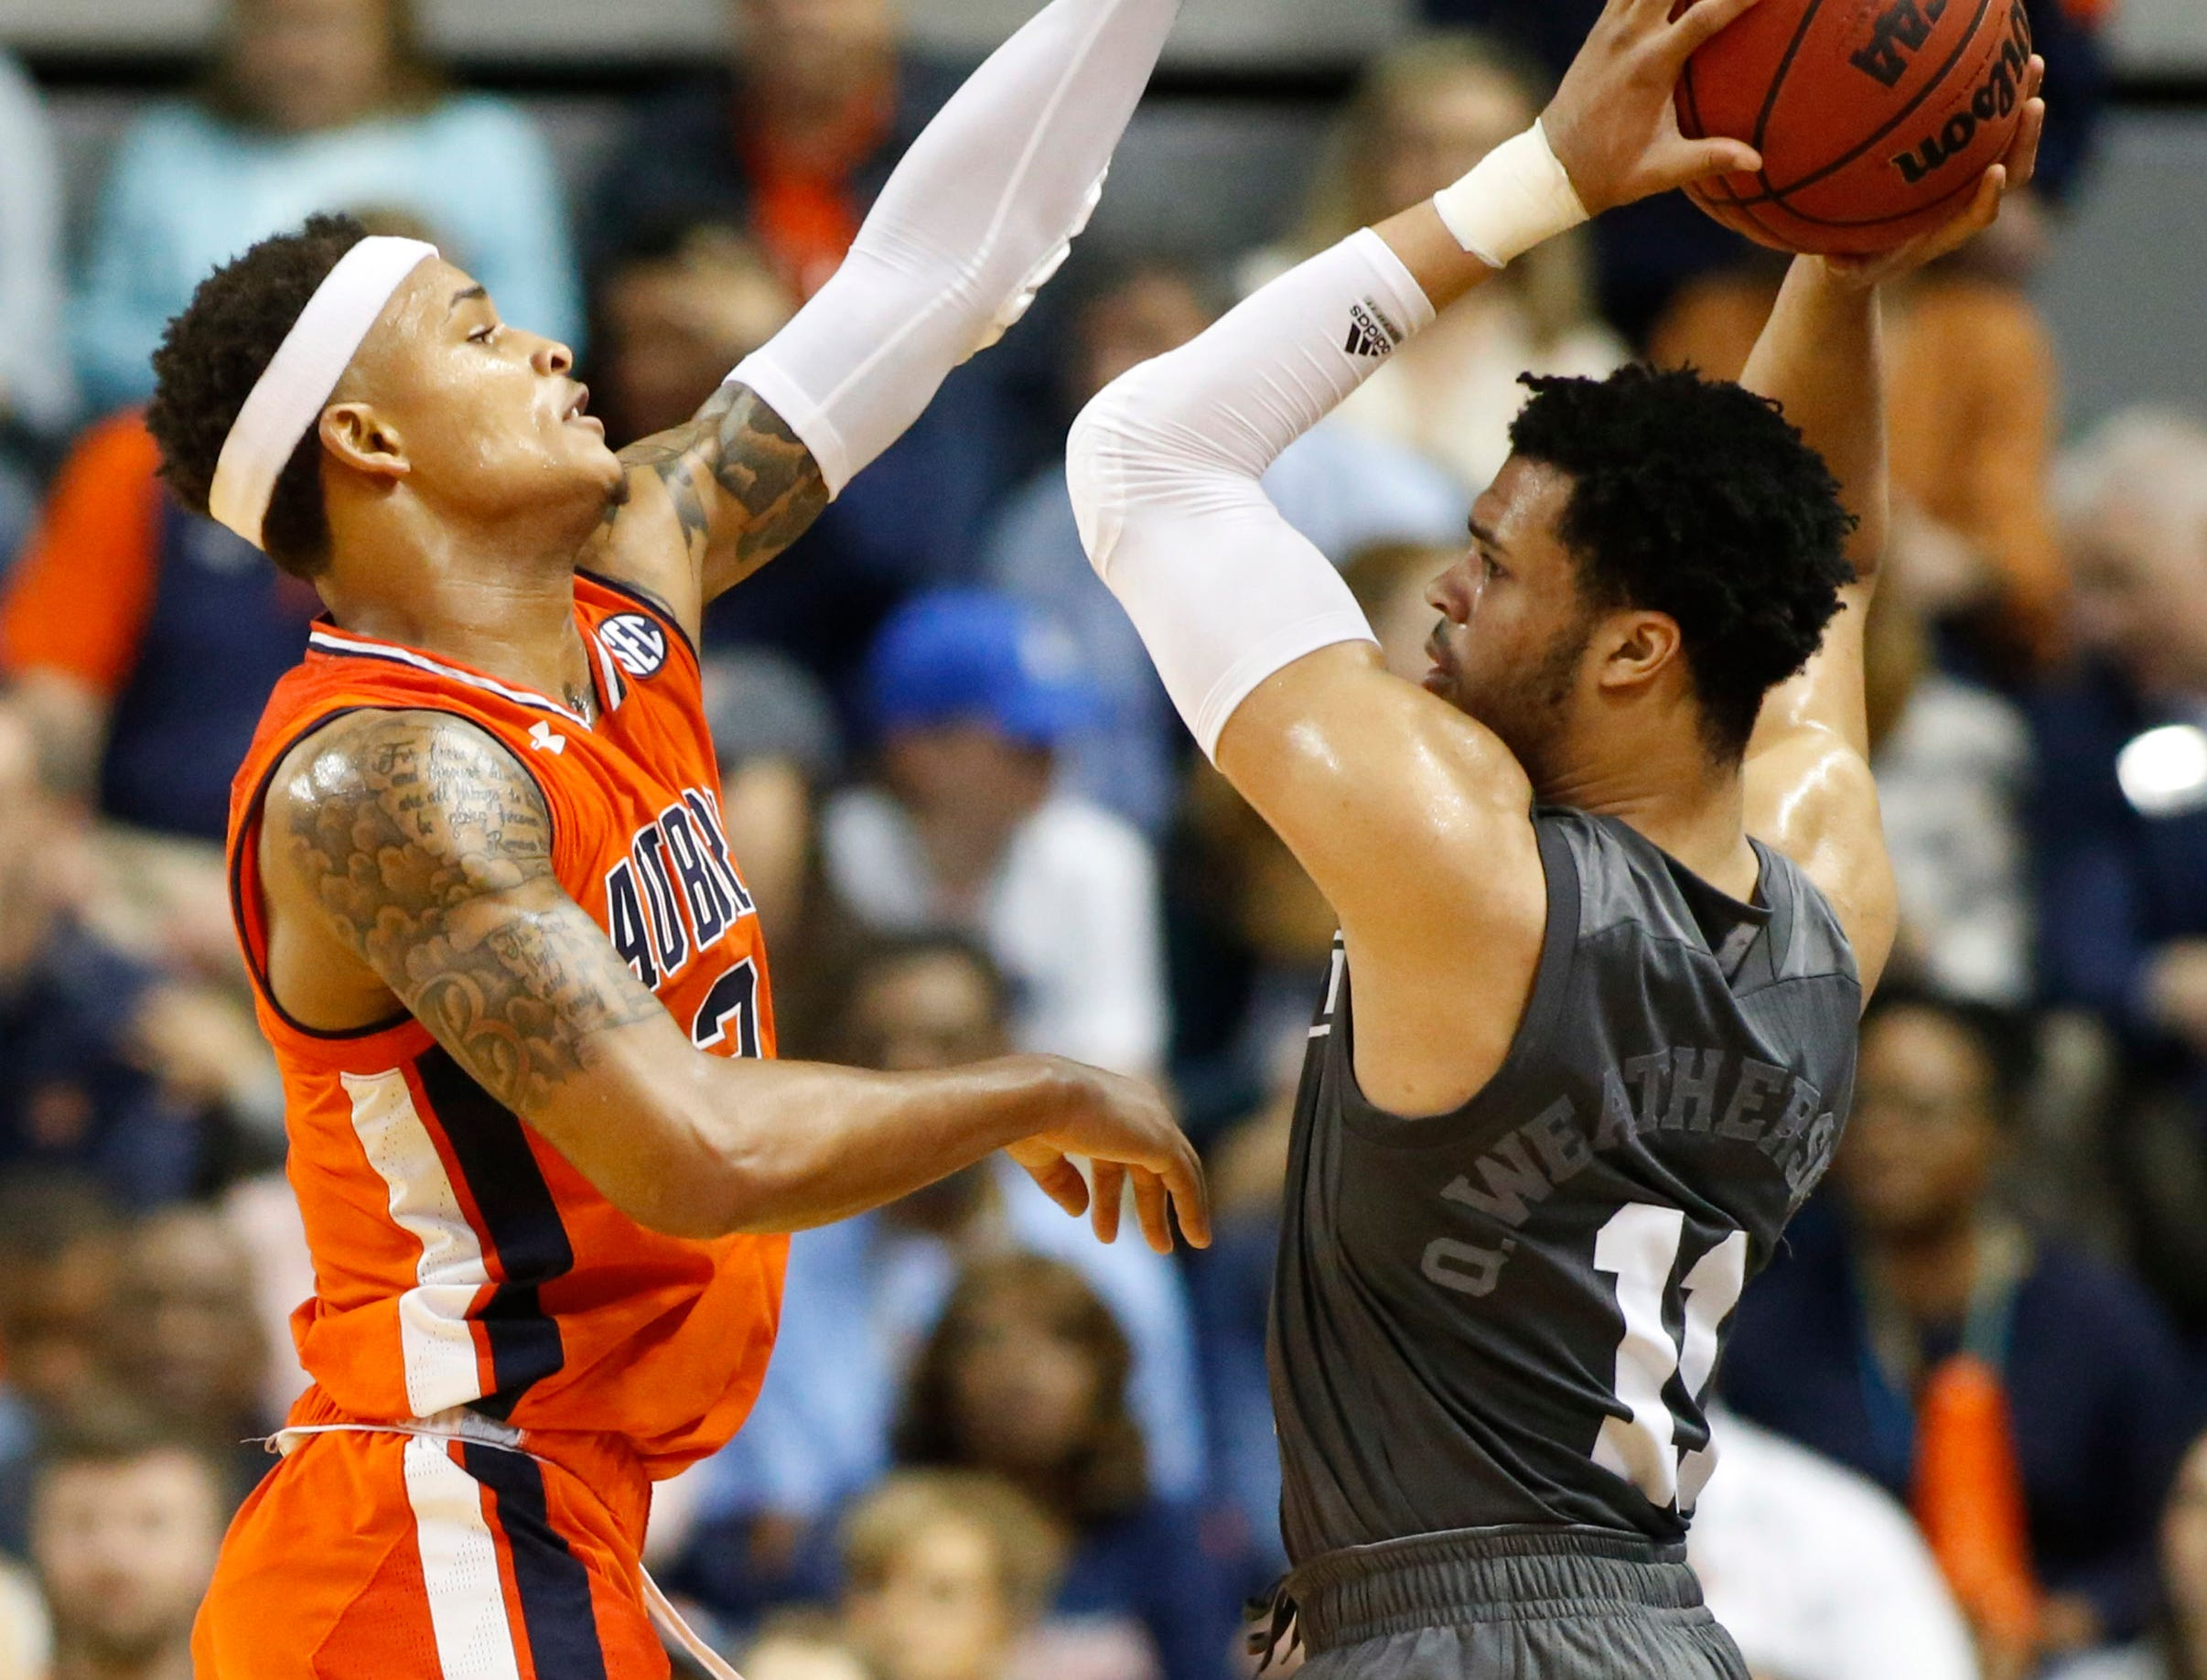 Mar 2, 2019; Auburn, AL, USA; Mississippi State Bulldogs guard Quinndary Weatherspoon (11) is pressured by Auburn Tigers guard Bryce Brown (2) during the second half at Auburn Arena. Mandatory Credit: John Reed-USA TODAY Sports